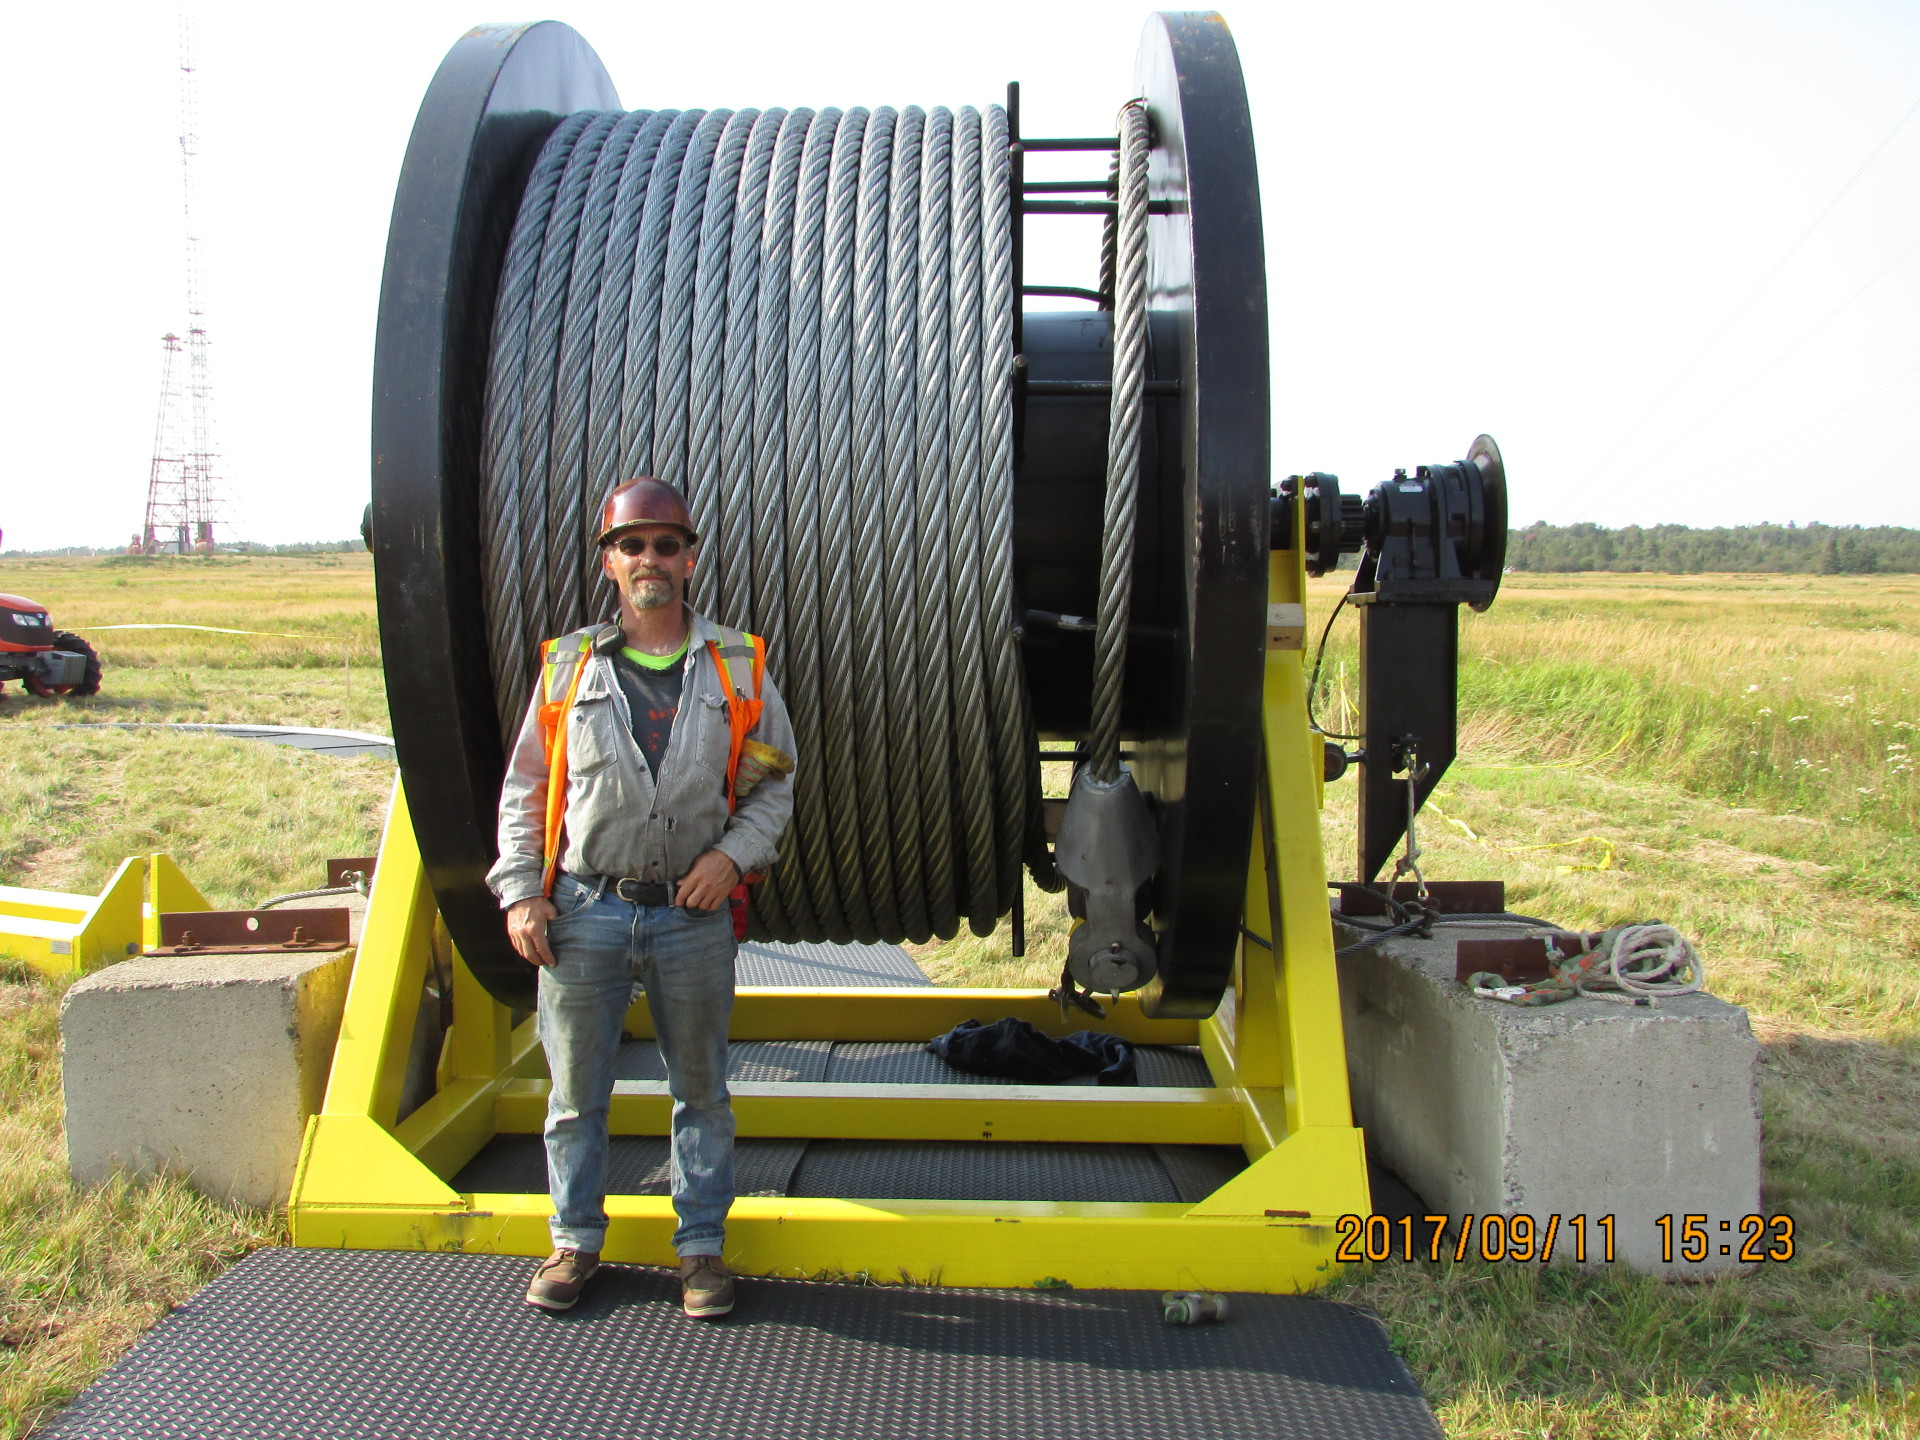 42,000 LBS of Reel Cable